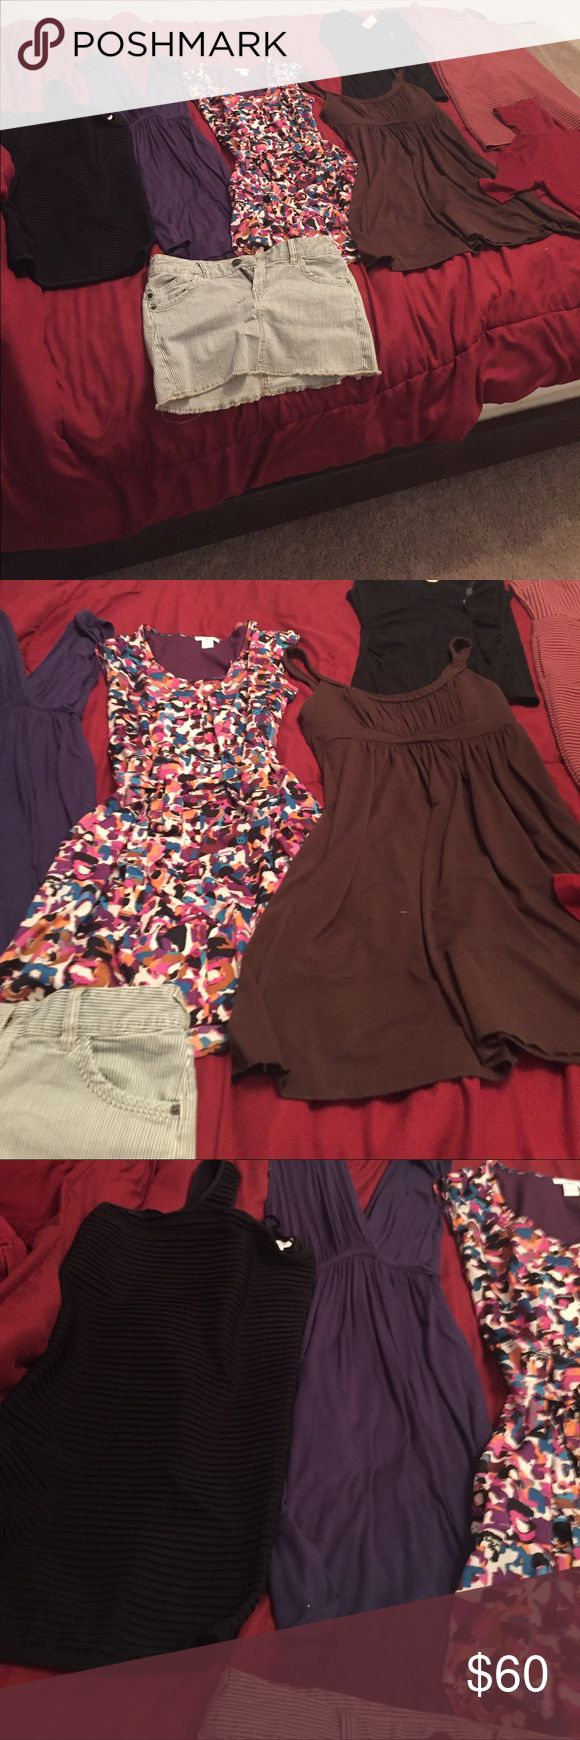 HAVE IT ALL SALE! This listing includes everything pictured 8 items total Express blue and white striped skirt sz 4  BCBG black stretchy going out dress sz M/L  Soprano blue dress sz medium   Bar III multi colored dress sz small  Ann Taylor black cowl neck shirt NWT sz small   Three pink hearts brown dress sz medium  Loft pink and black striped dress size 0   Mossimo maroon shirt sz xs Dresses